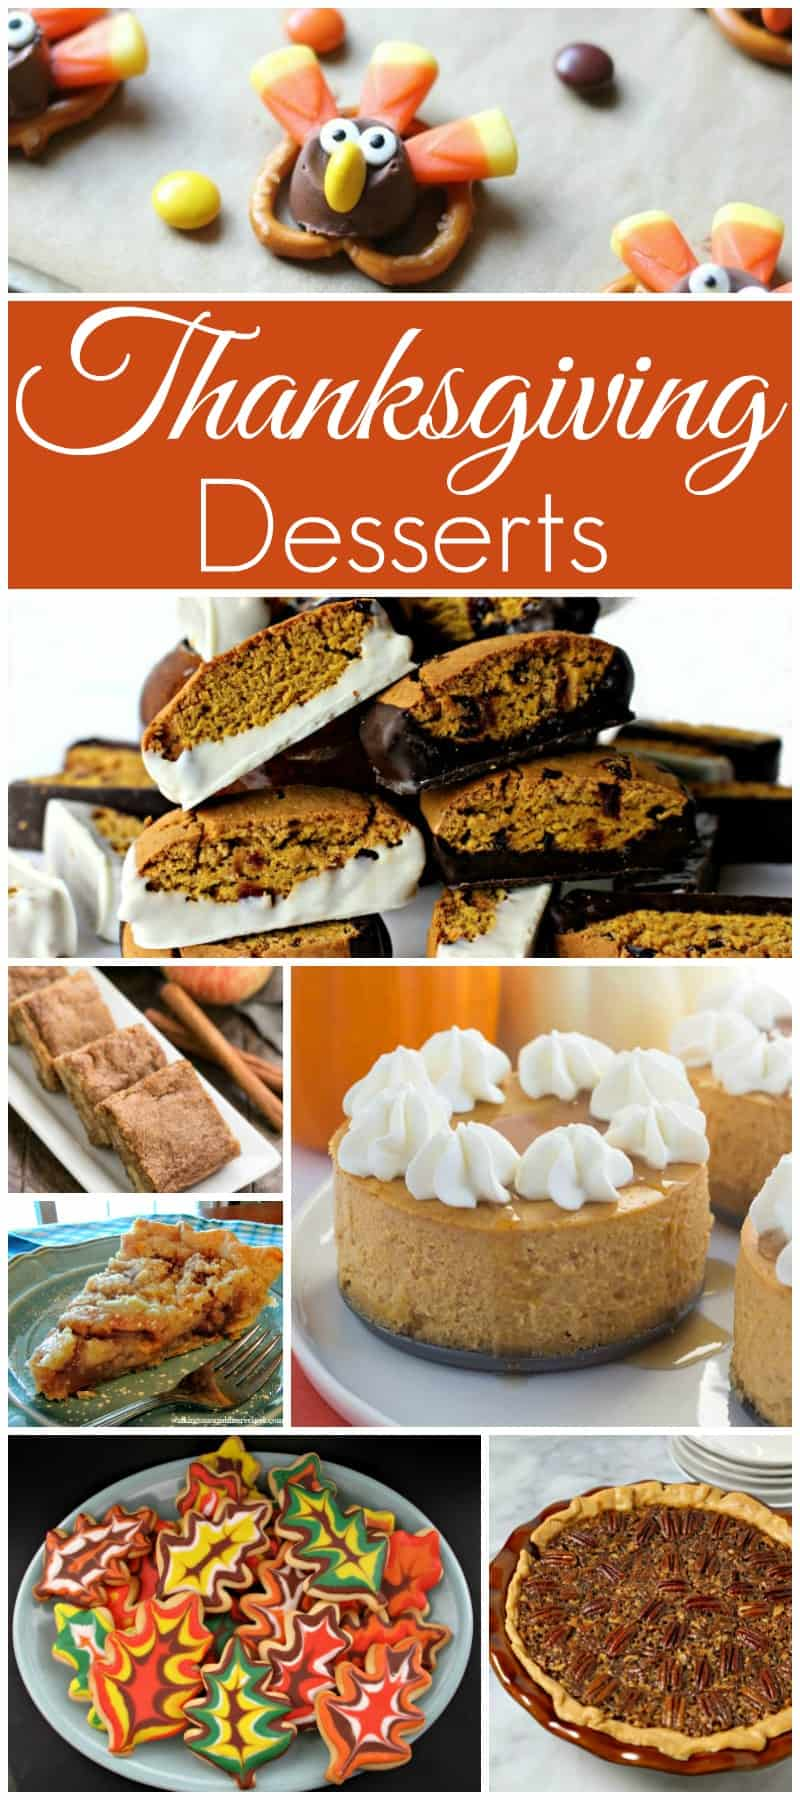 thanksgiving desserts recipes dishes dessert delicious recipe party 5minutesformom later